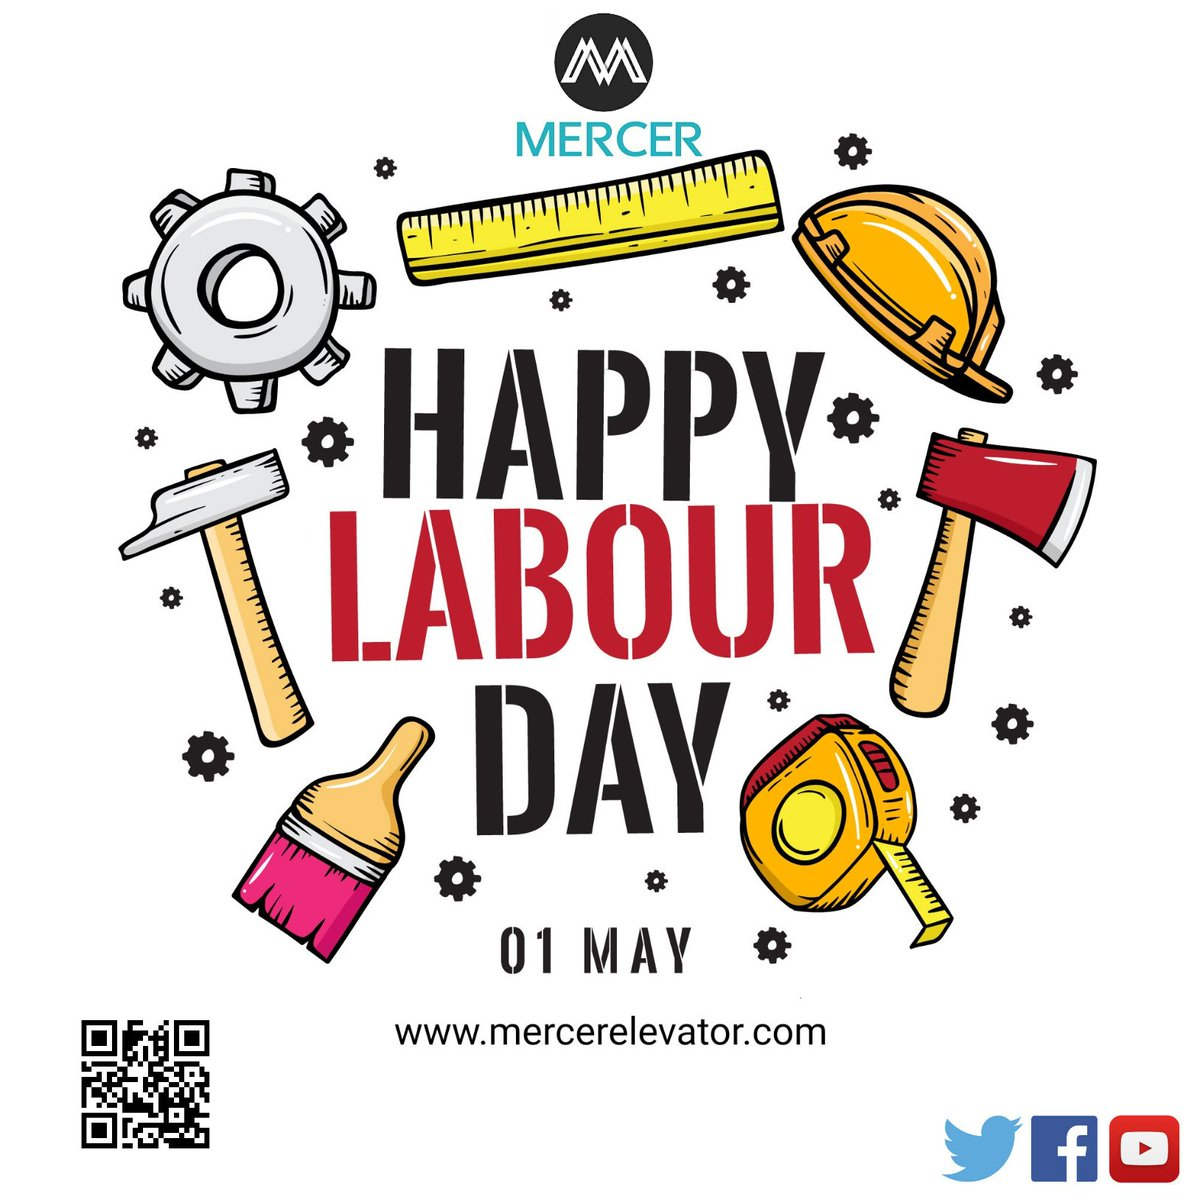 #labourday #longweekend #bahrain #may #mayday #labour #mercerelevator #worldlabourday #labourdayweekend #happiness #laborday #groupclasses #celebration #bahrainevents #personaltraining #bhfyp https://t.co/1GAGXwF734